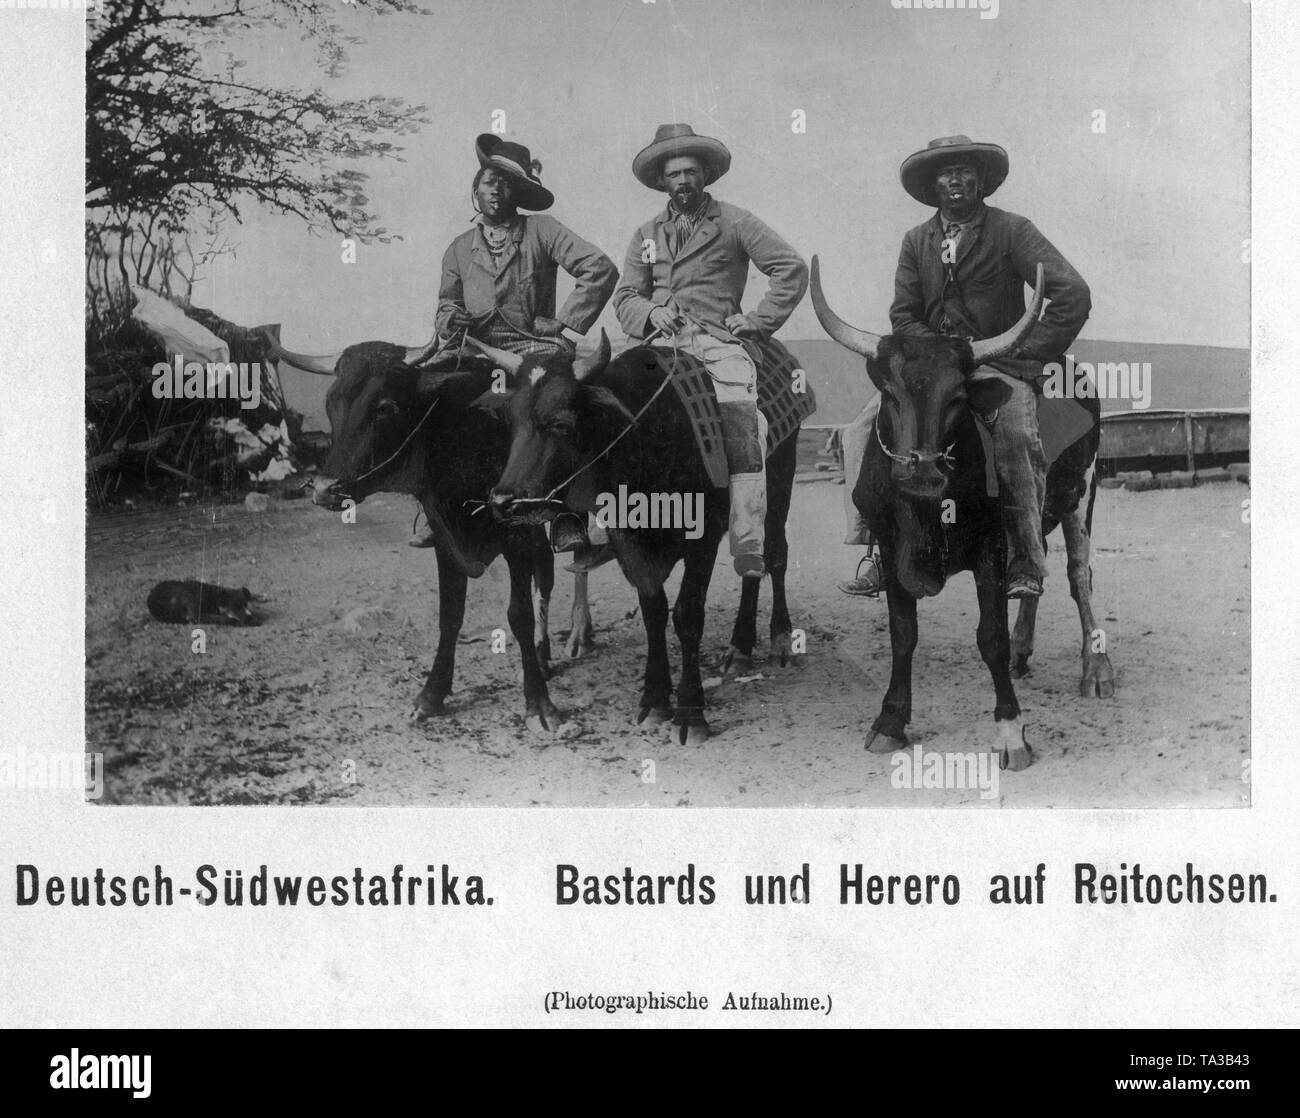 Three Baster and Herero men in European clothes riding oxen. Stock Photo